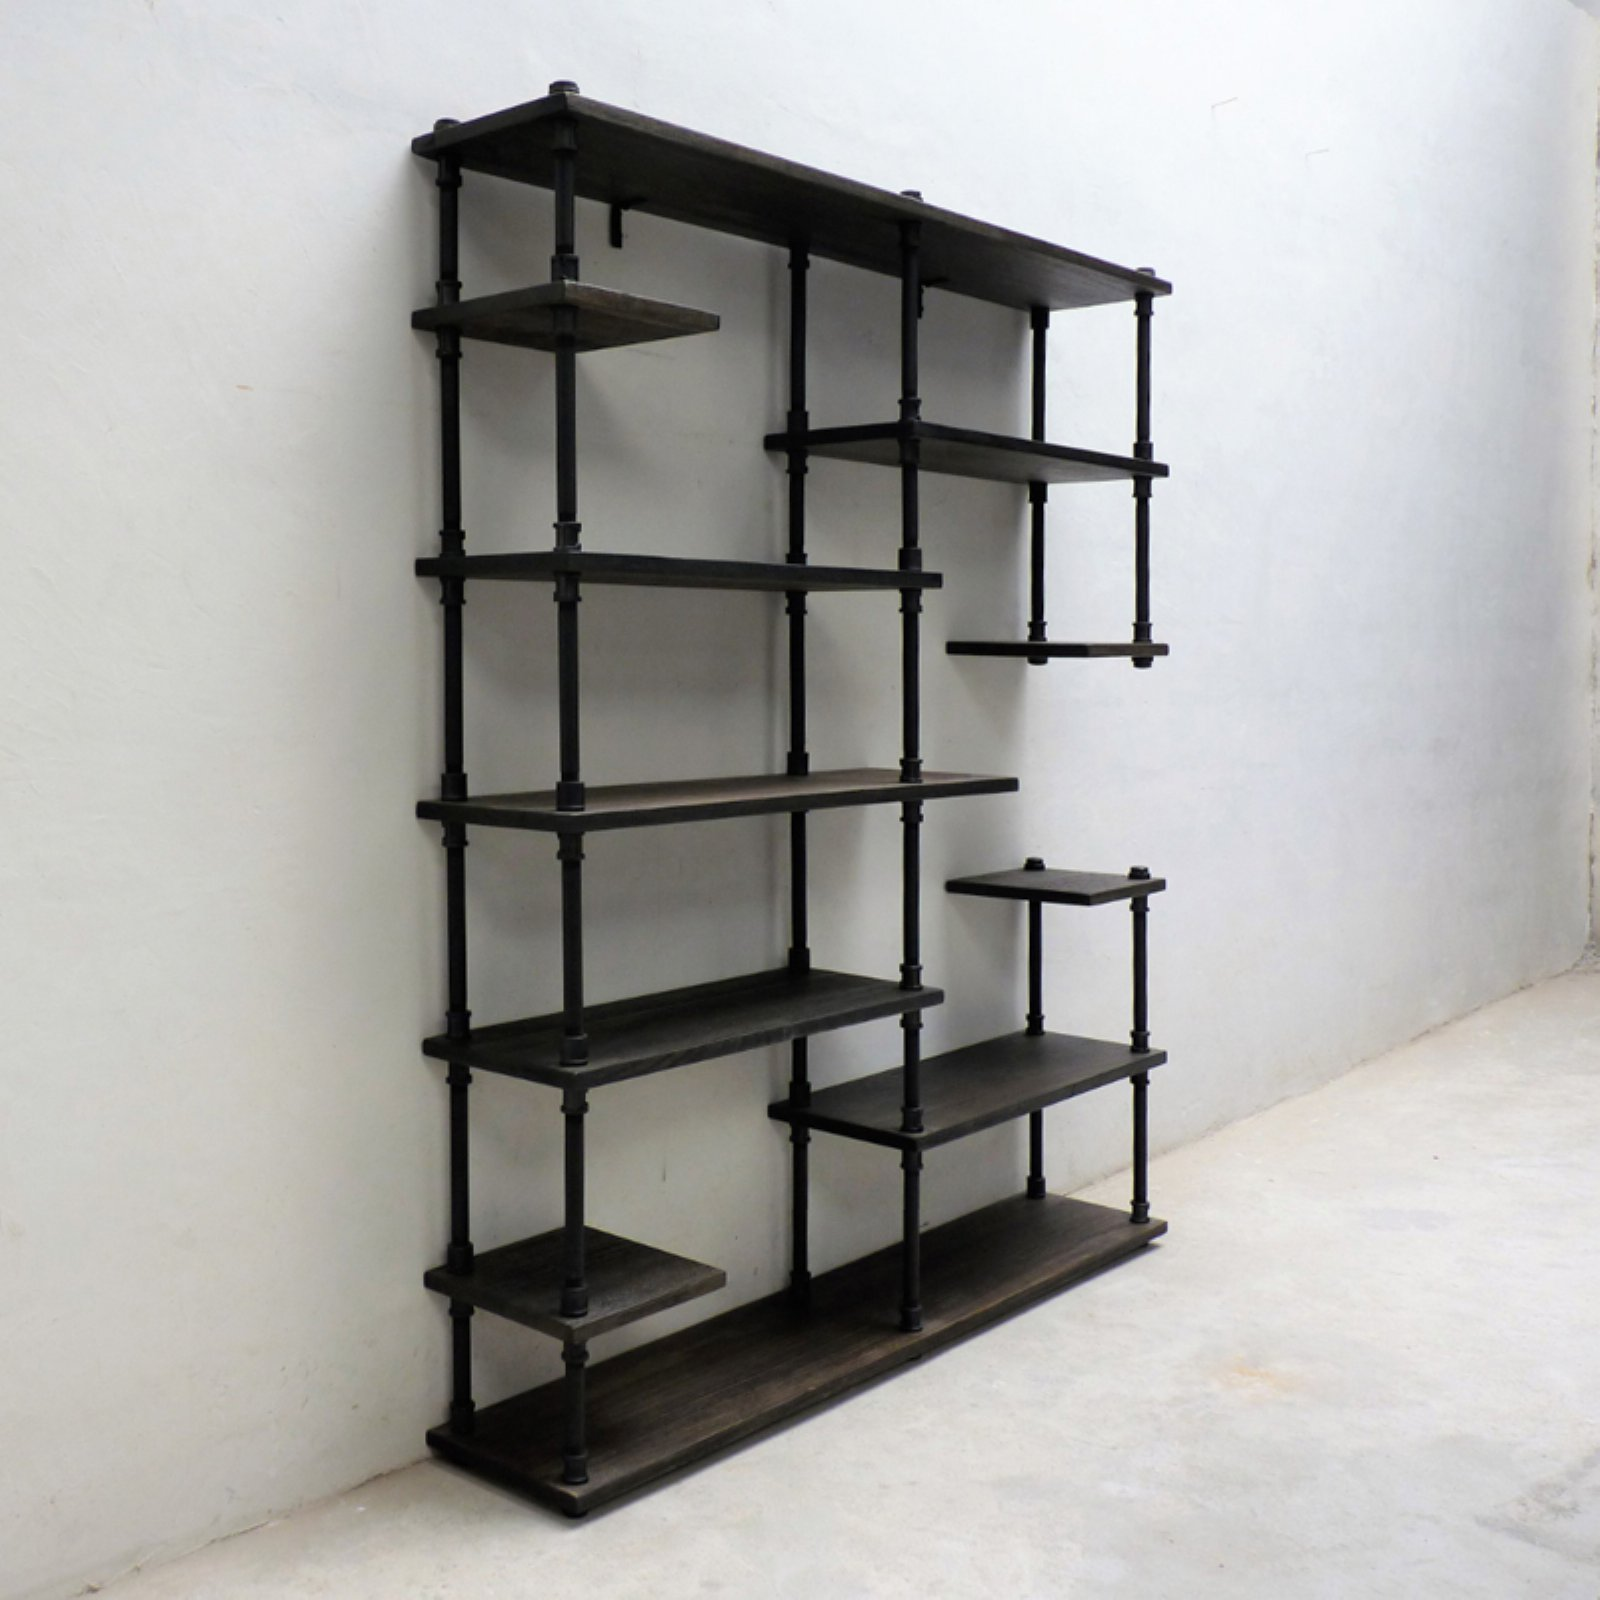 Furniture Pipeline Nashville Industrial Mid-Century Etagere Bookcase by Furniture Pipeline LLC